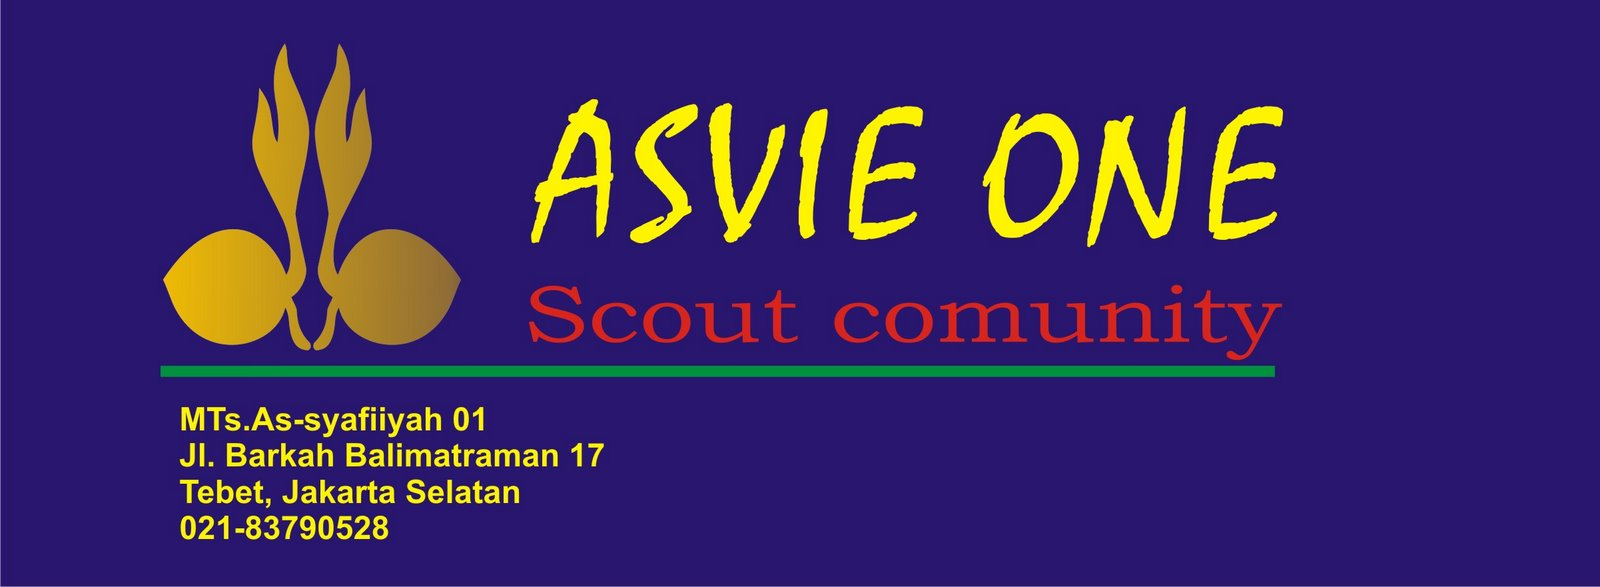 ASVIE ONE